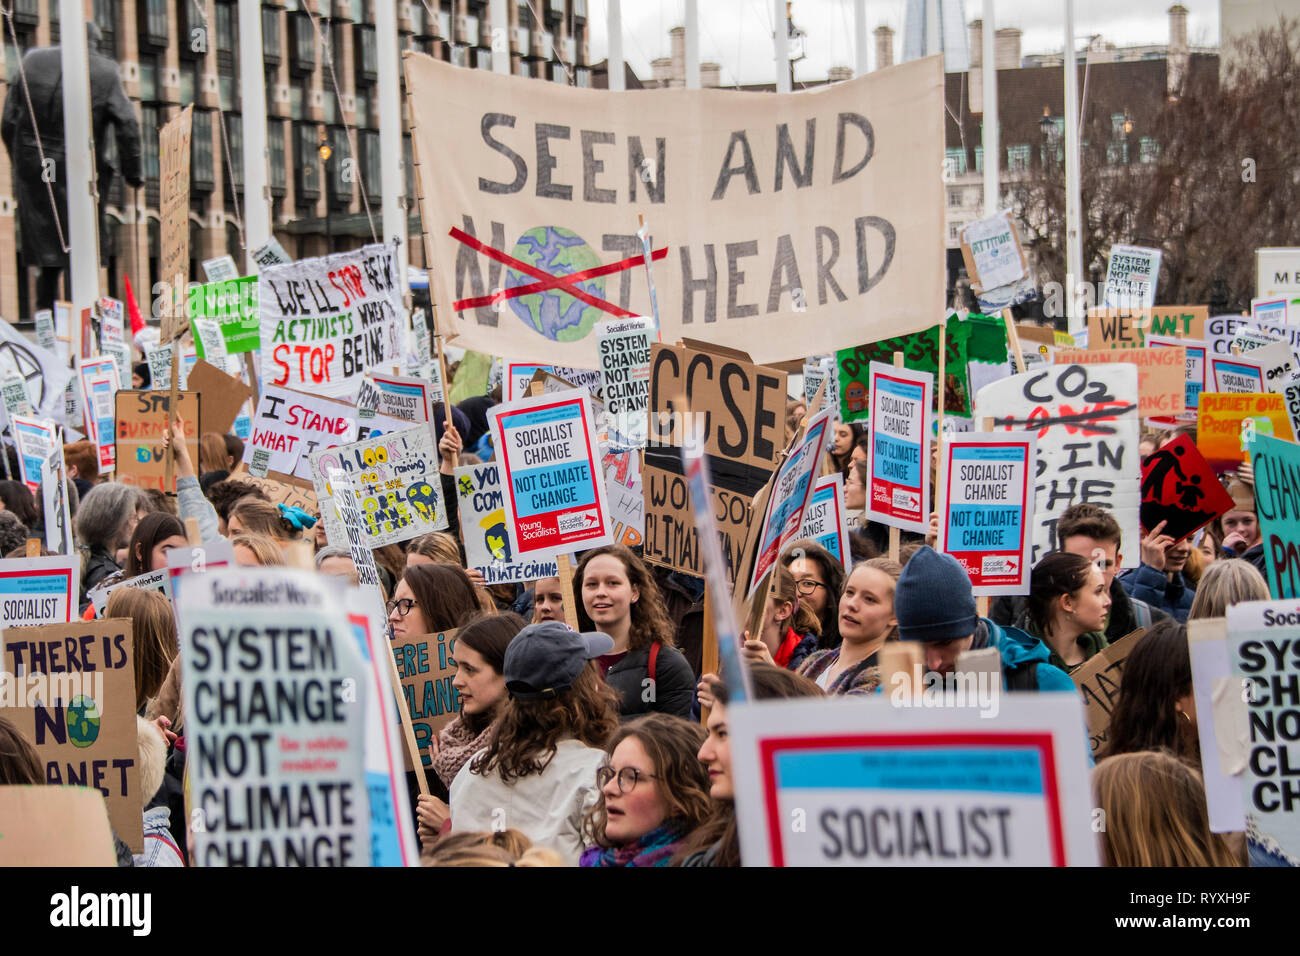 London, UK. 15th Mar 2019. Rallying in Parliament Square - School students go on strike over the lack of action on climate change. They gather in Parliament square and march on Downing Street, blocking the streets around Westminster for over an hour. Credit: Guy Bell/Alamy Live News Stock Photo